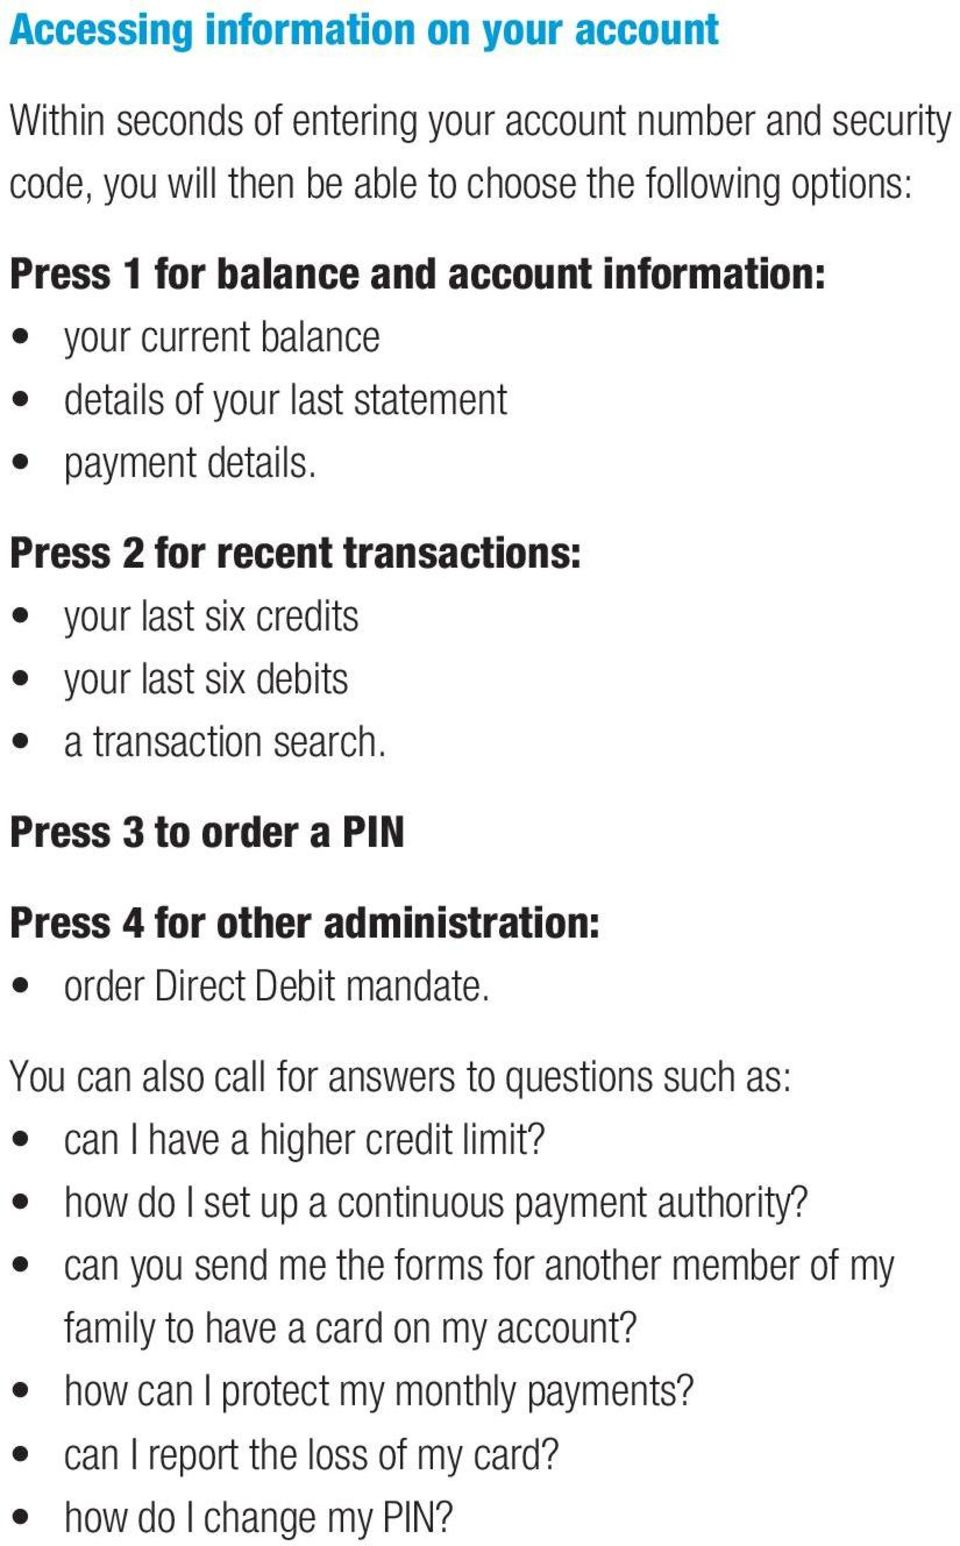 Press 3 to order a PIN Press 4 for other administration: order Direct Debit mandate. You can also call for answers to questions such as: can I have a higher credit limit?